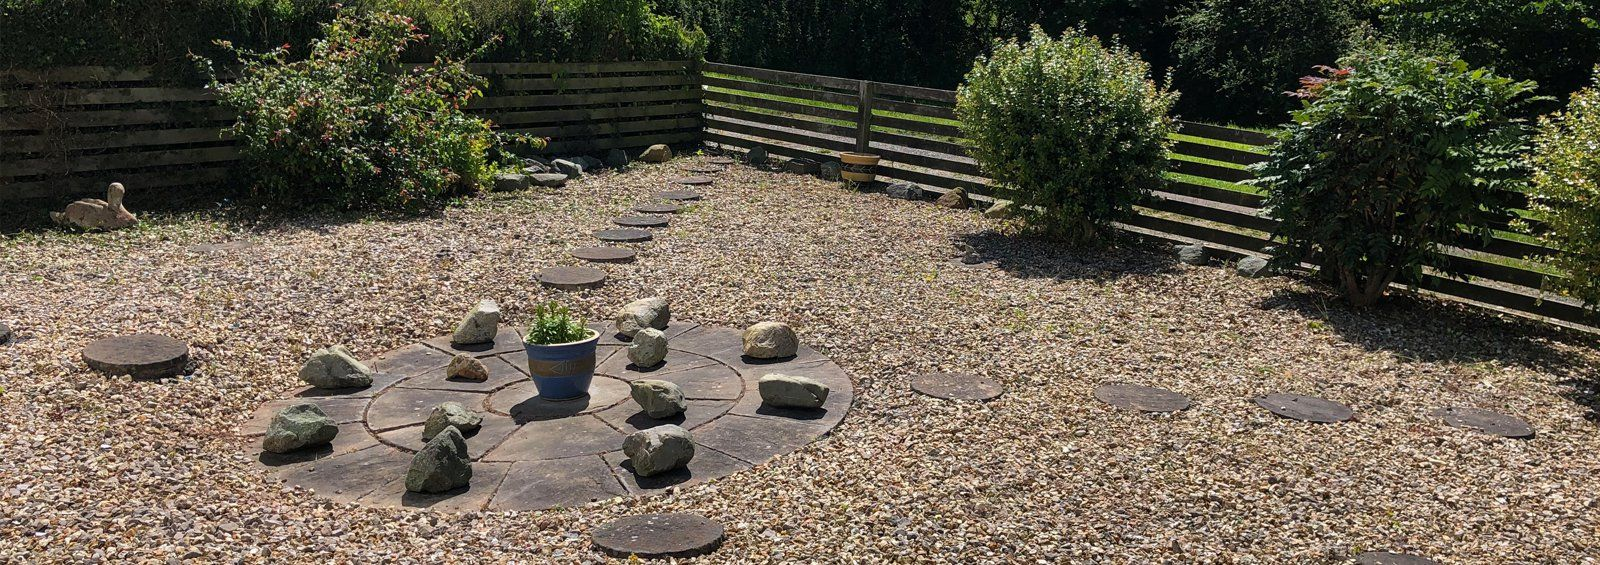 front garden maintenance, glanwydden, deganwy, conwy, north wales